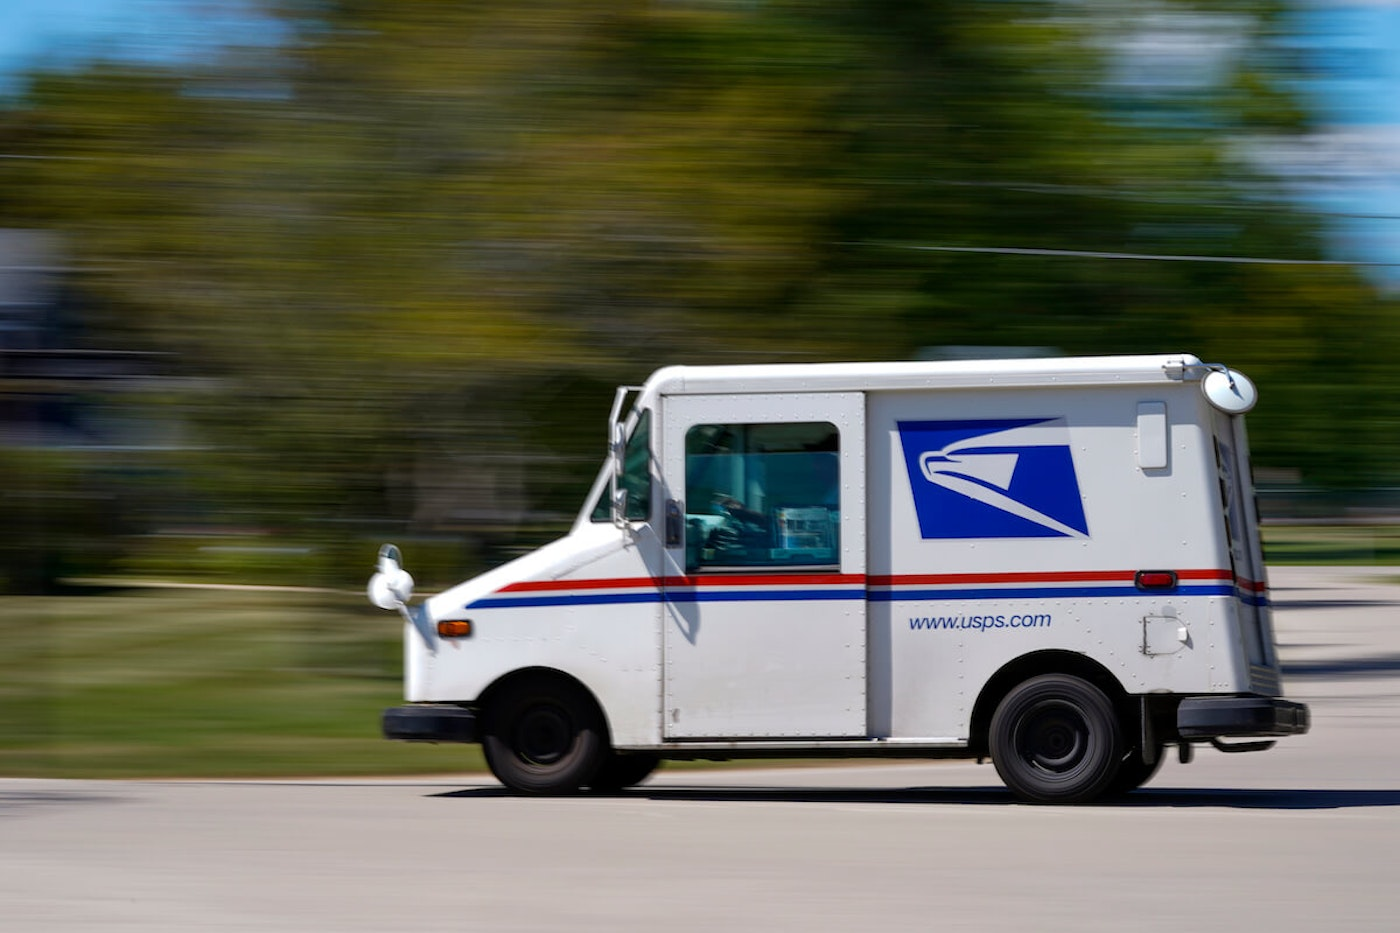 Postal service can handle absentee ballot volume